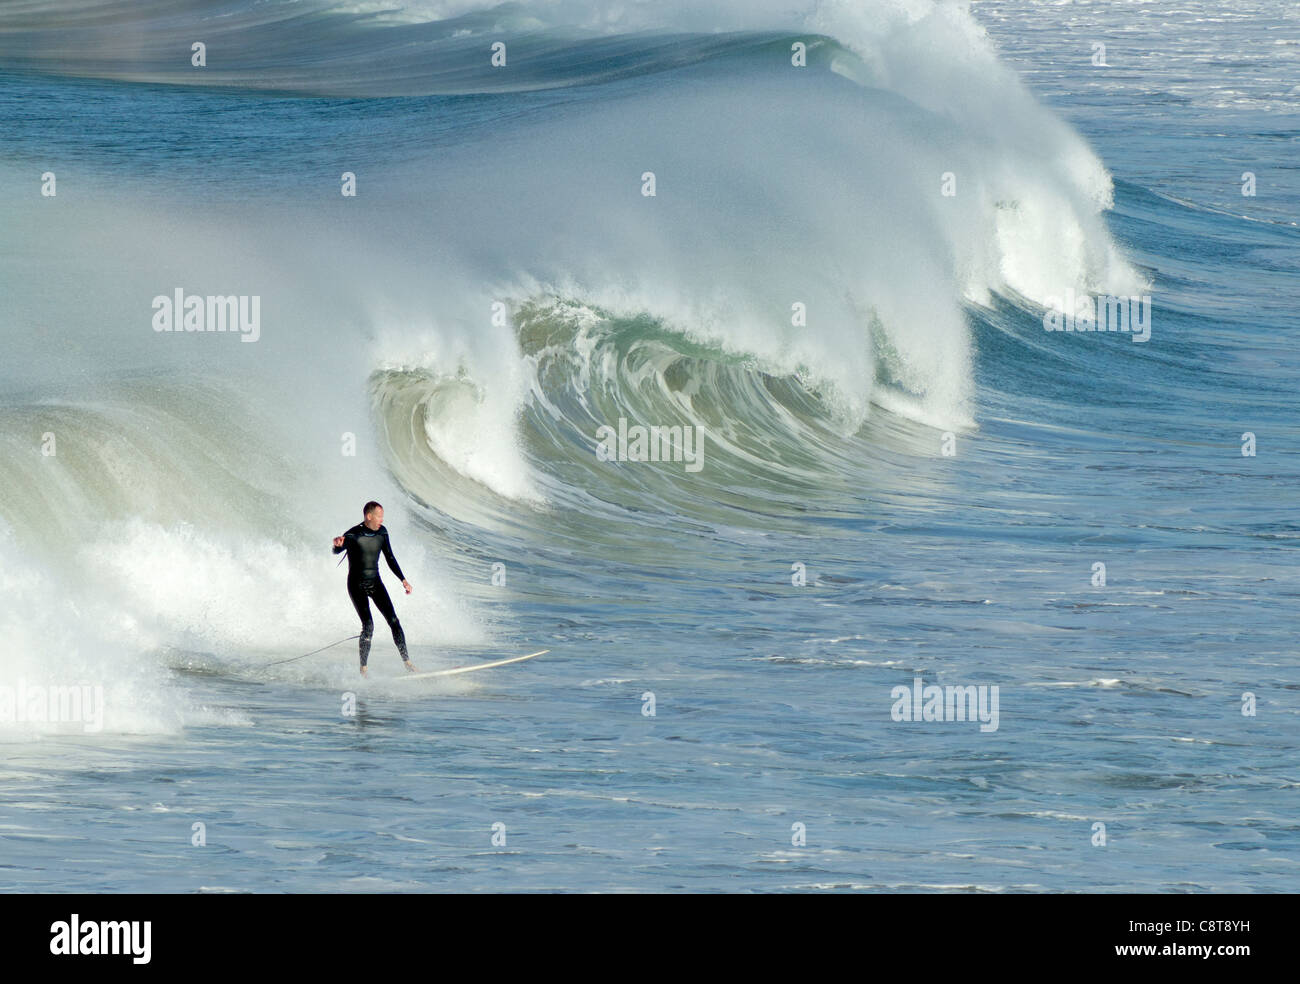 A surfer surfing a breaking wave with lots of water spray in Newquay, Cornwall UK. - Stock Image